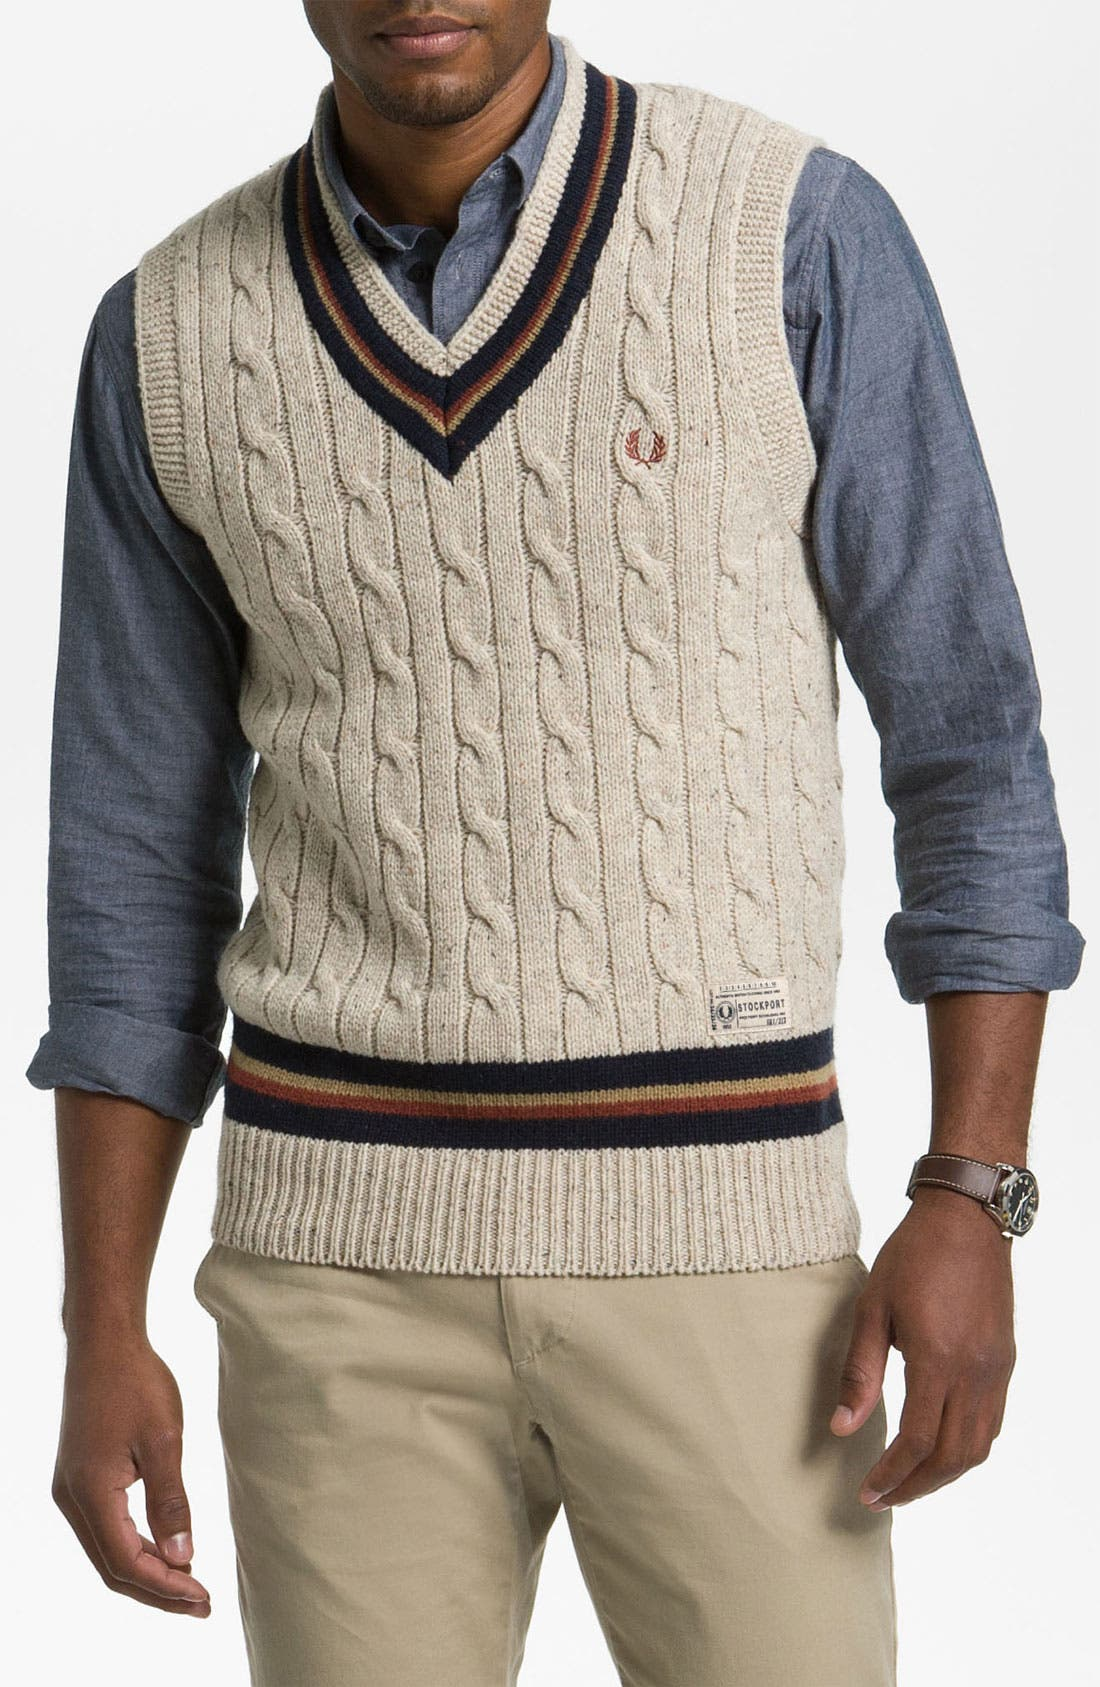 Main Image - Fred Perry V-Neck Lambswool Sweater Vest